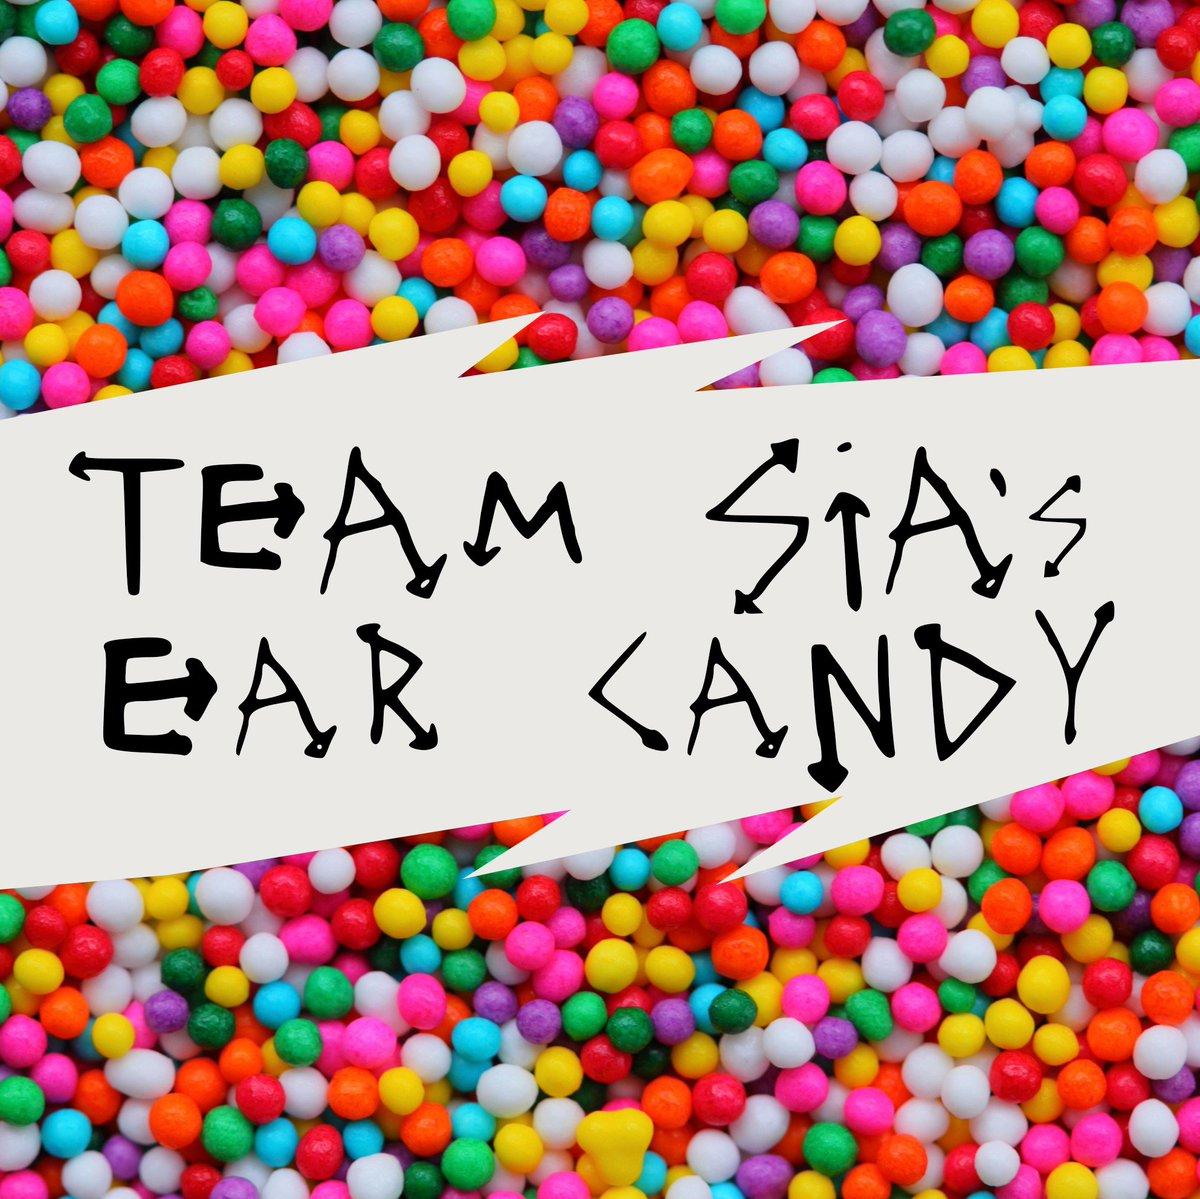 Sweeten up your day with Team Sia's Ear Candy on @Spotify ???????? https://t.co/ZYYZnTXRHU - Team Sia https://t.co/JlSqbprTFj